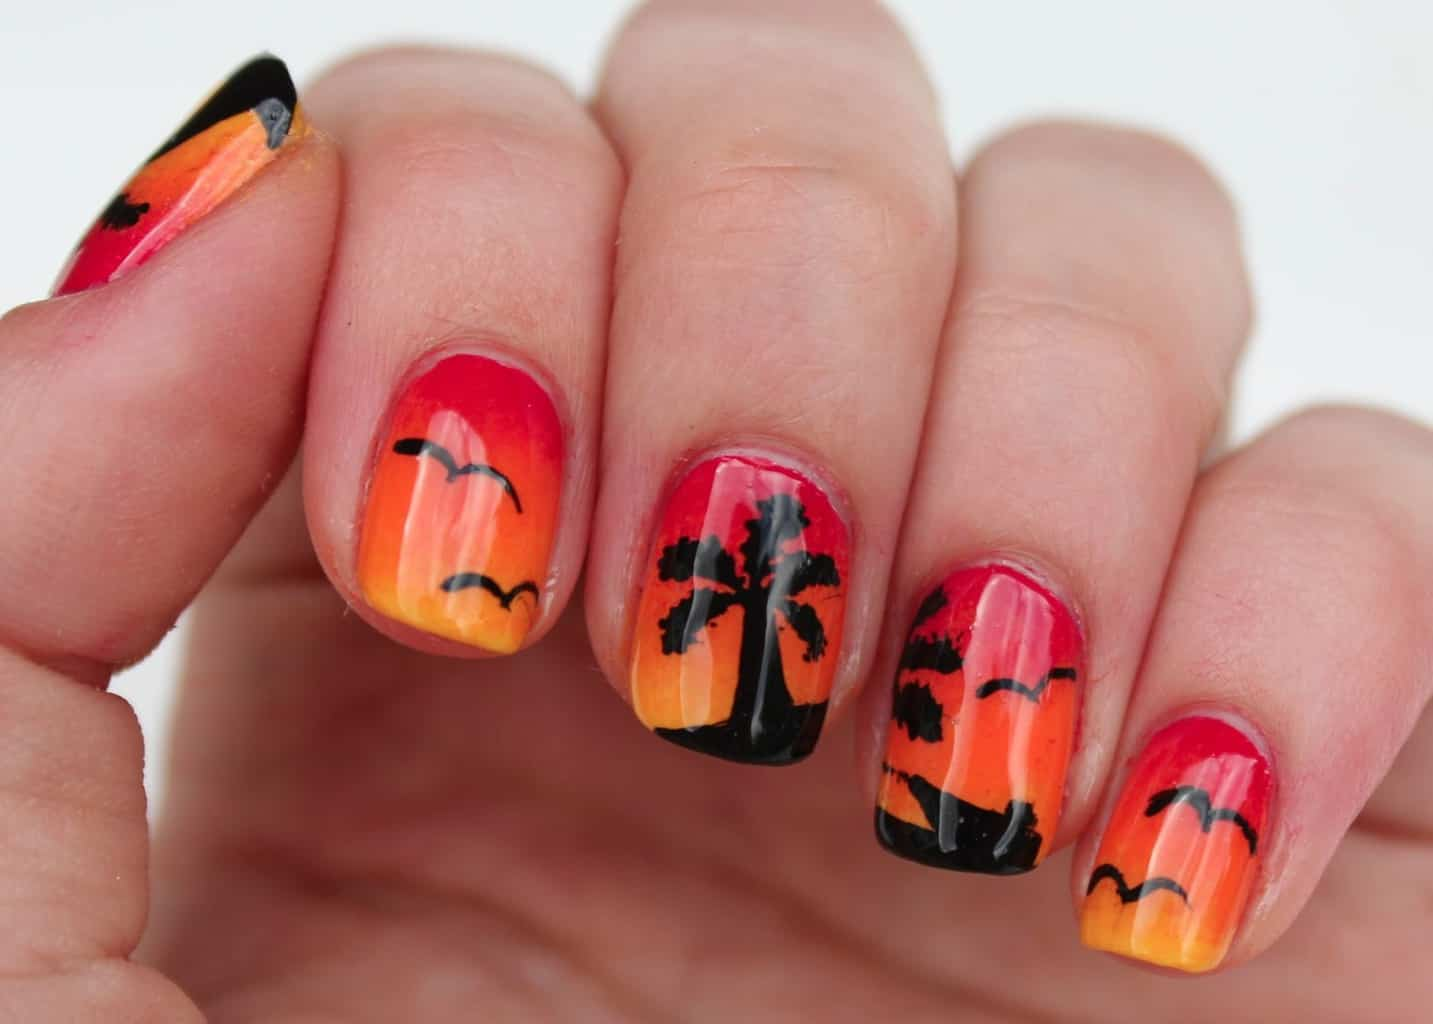 Beach effect sunset nails - 12 Sunset Nail Designs: Look Cool Any Time Of The Day